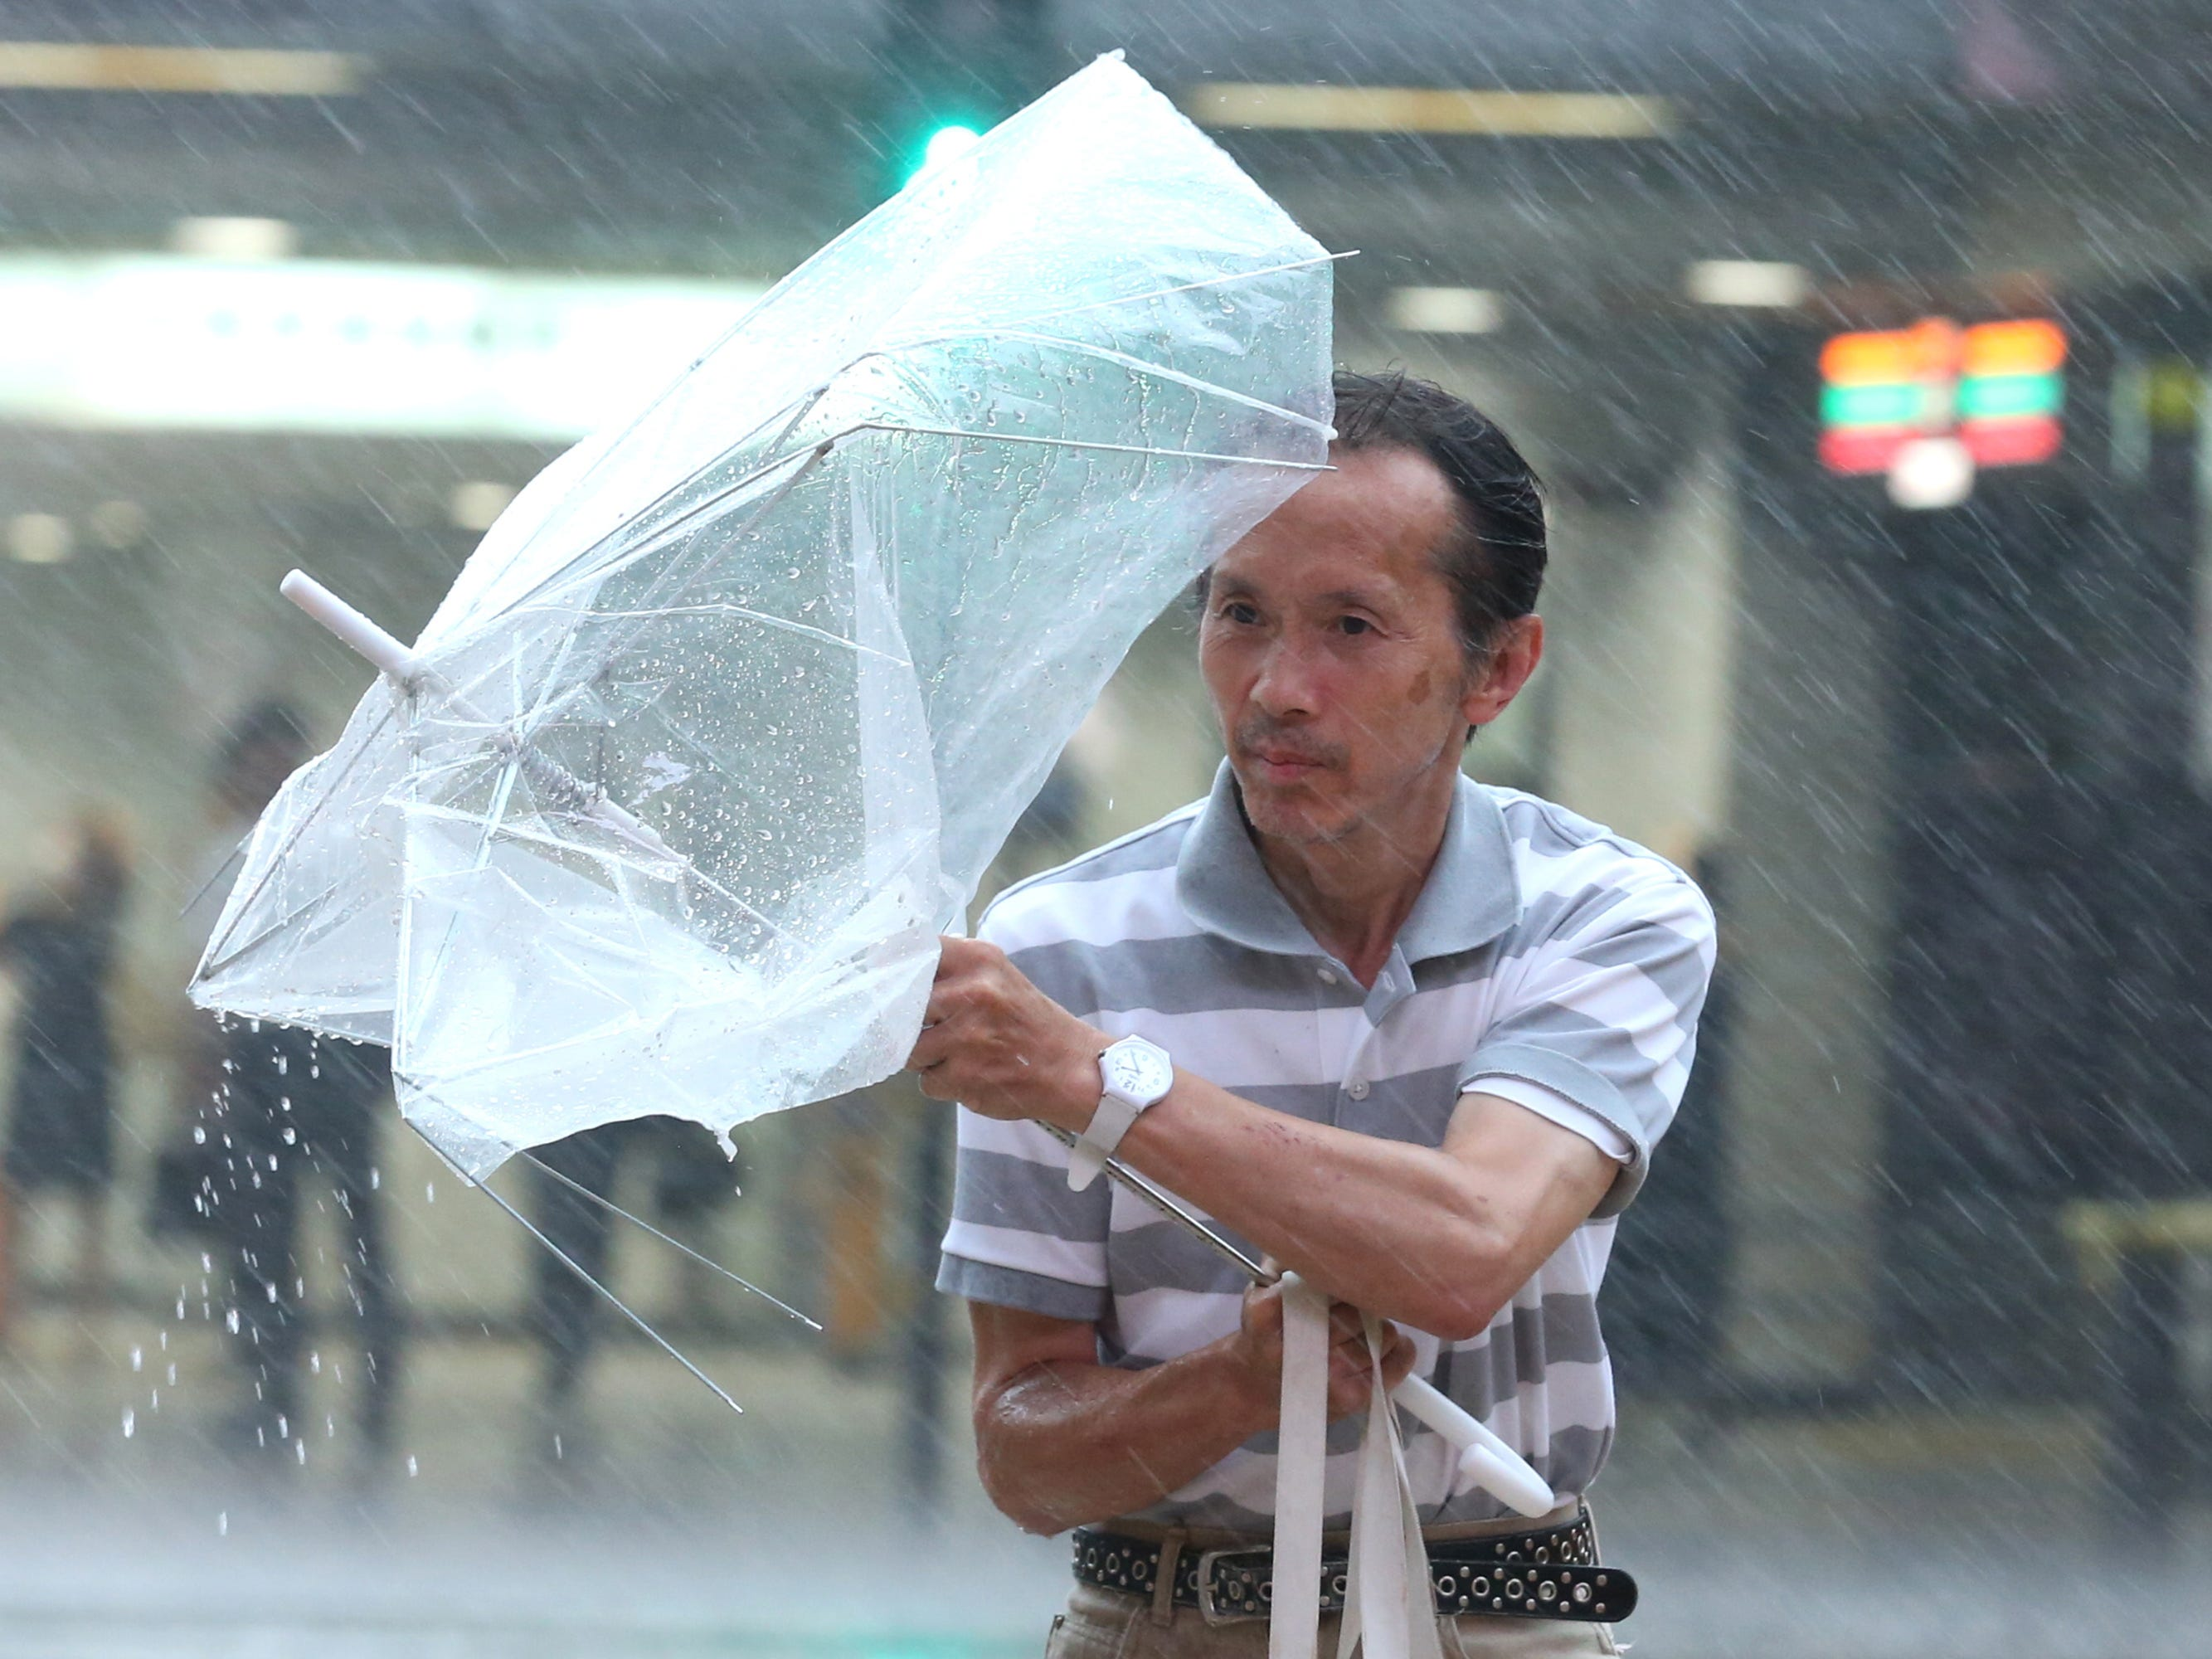 epa06995622 A pedestrian struggles against strong winds and rain generated by typhoon Jebi near Osaka station in Osaka, western Japan, 04 September 2018. Powerful typhoon Jebi made landfall in western Japan disrupting transports due to strong winds and heavy rain.  EPA-EFE/BUDDHIKA WEERASINGHE ORG XMIT: BUD